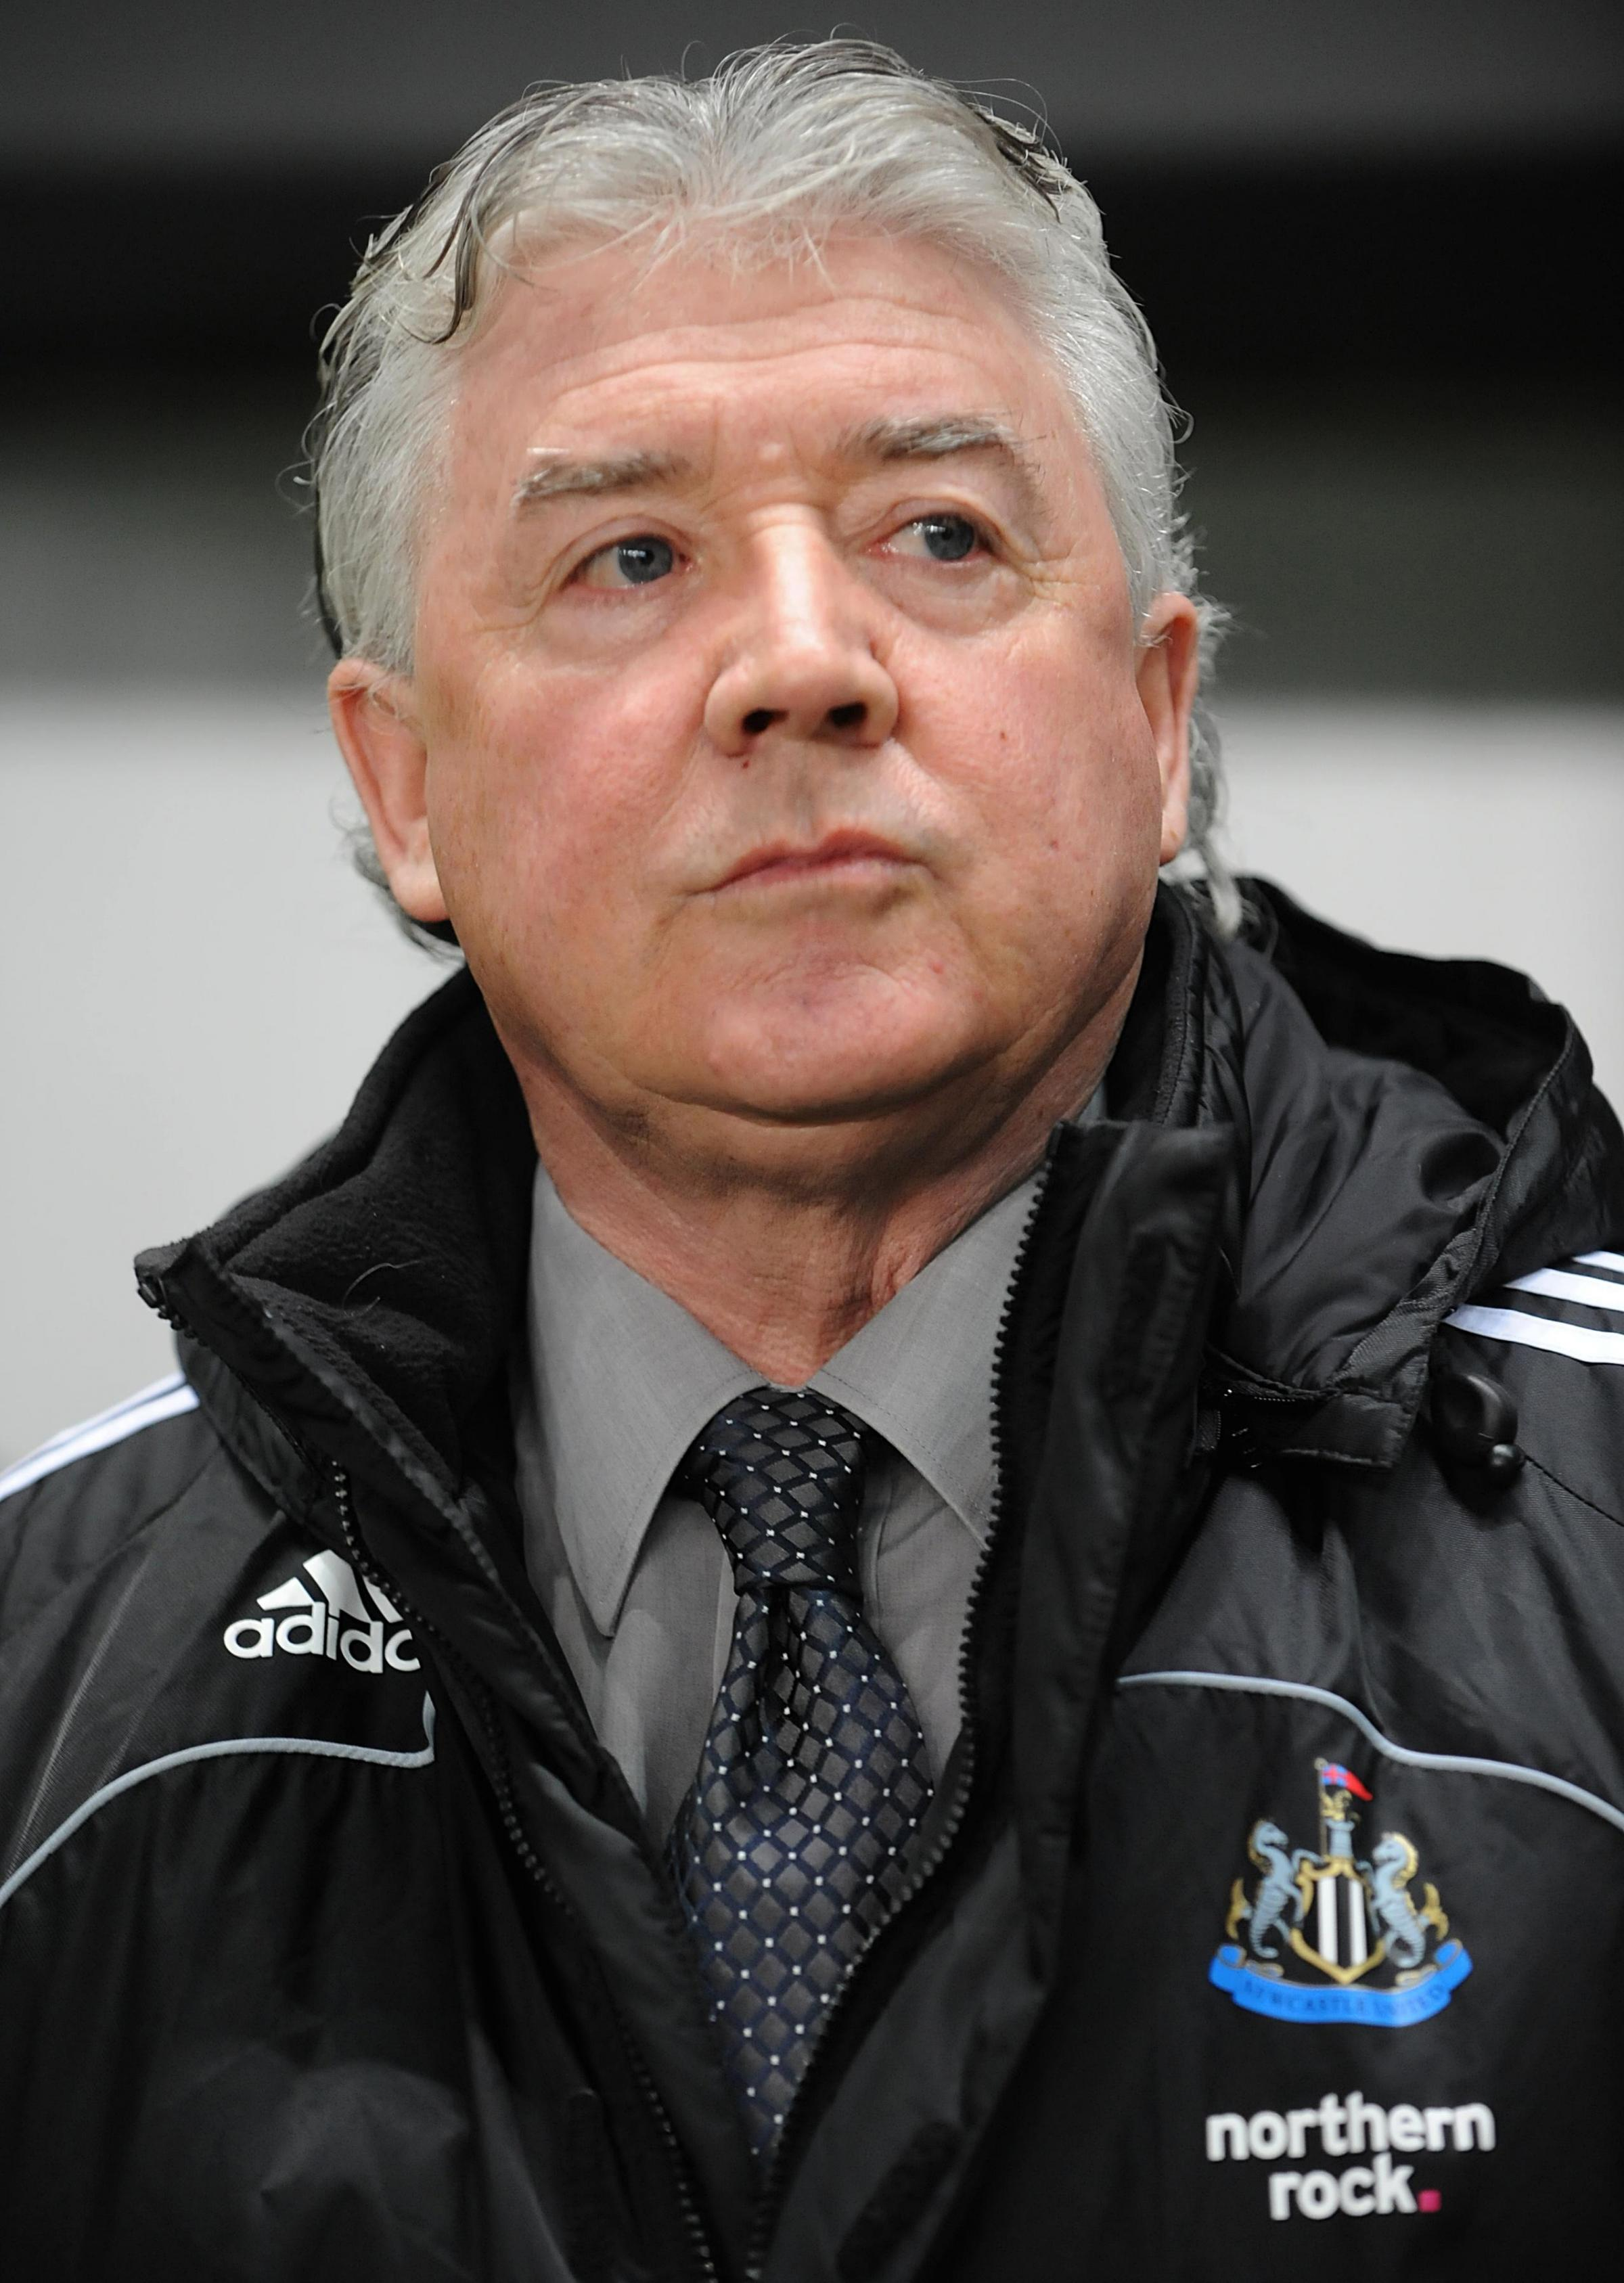 CHANGE REQUIRED: Joe Kinnear resigned from his post on Monday – now Newcastle United must take the opportunity to alter the management structure at the club